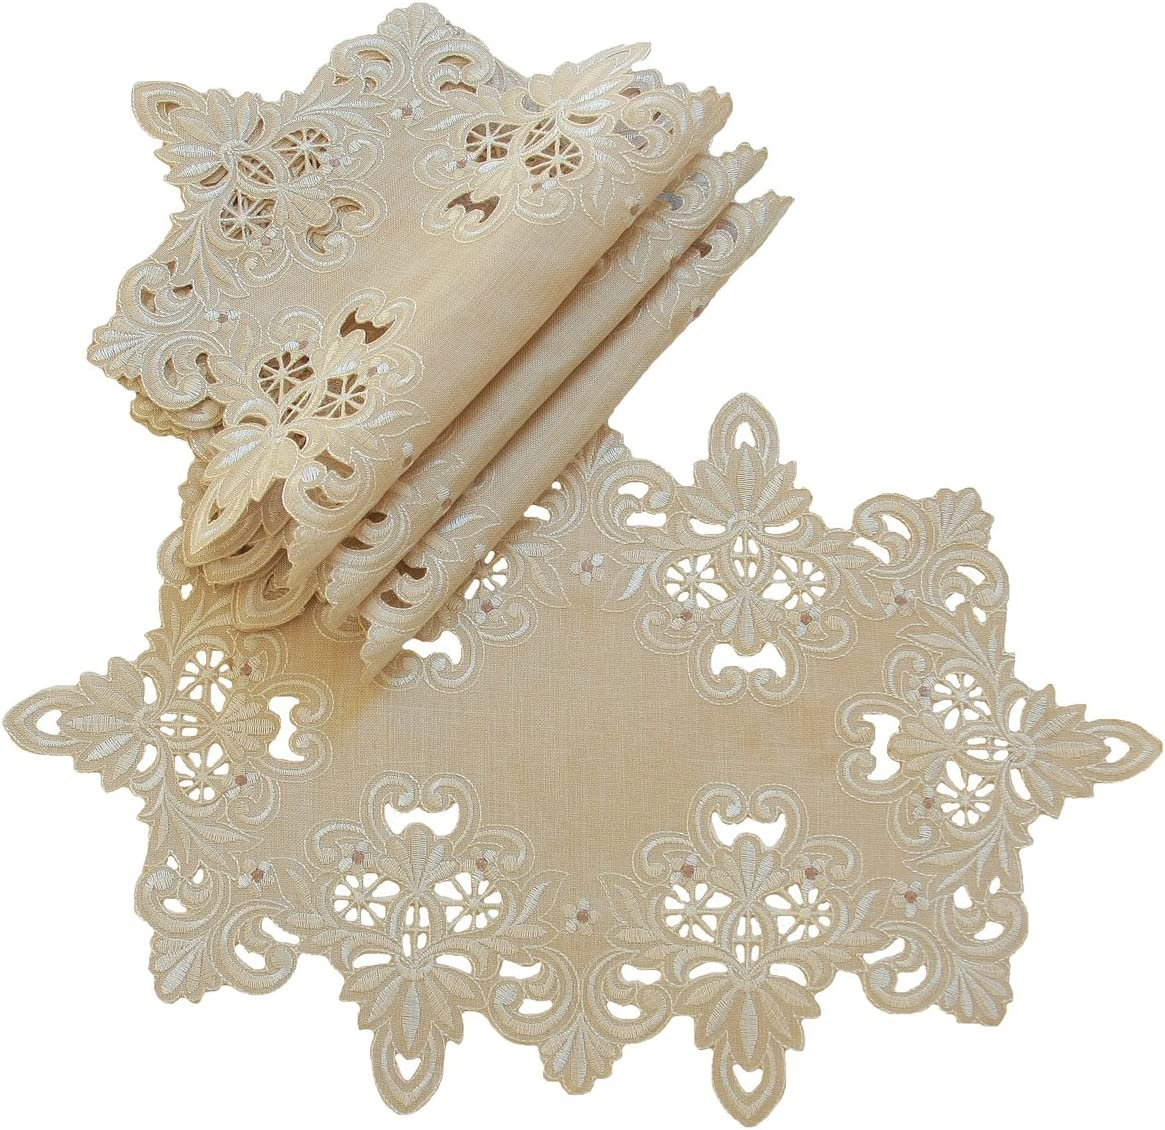 Xia Home Fashions Victorian Lace Embroidered Cutwork Placemat, 12 by 18-Inch, Taupe, Set of 4